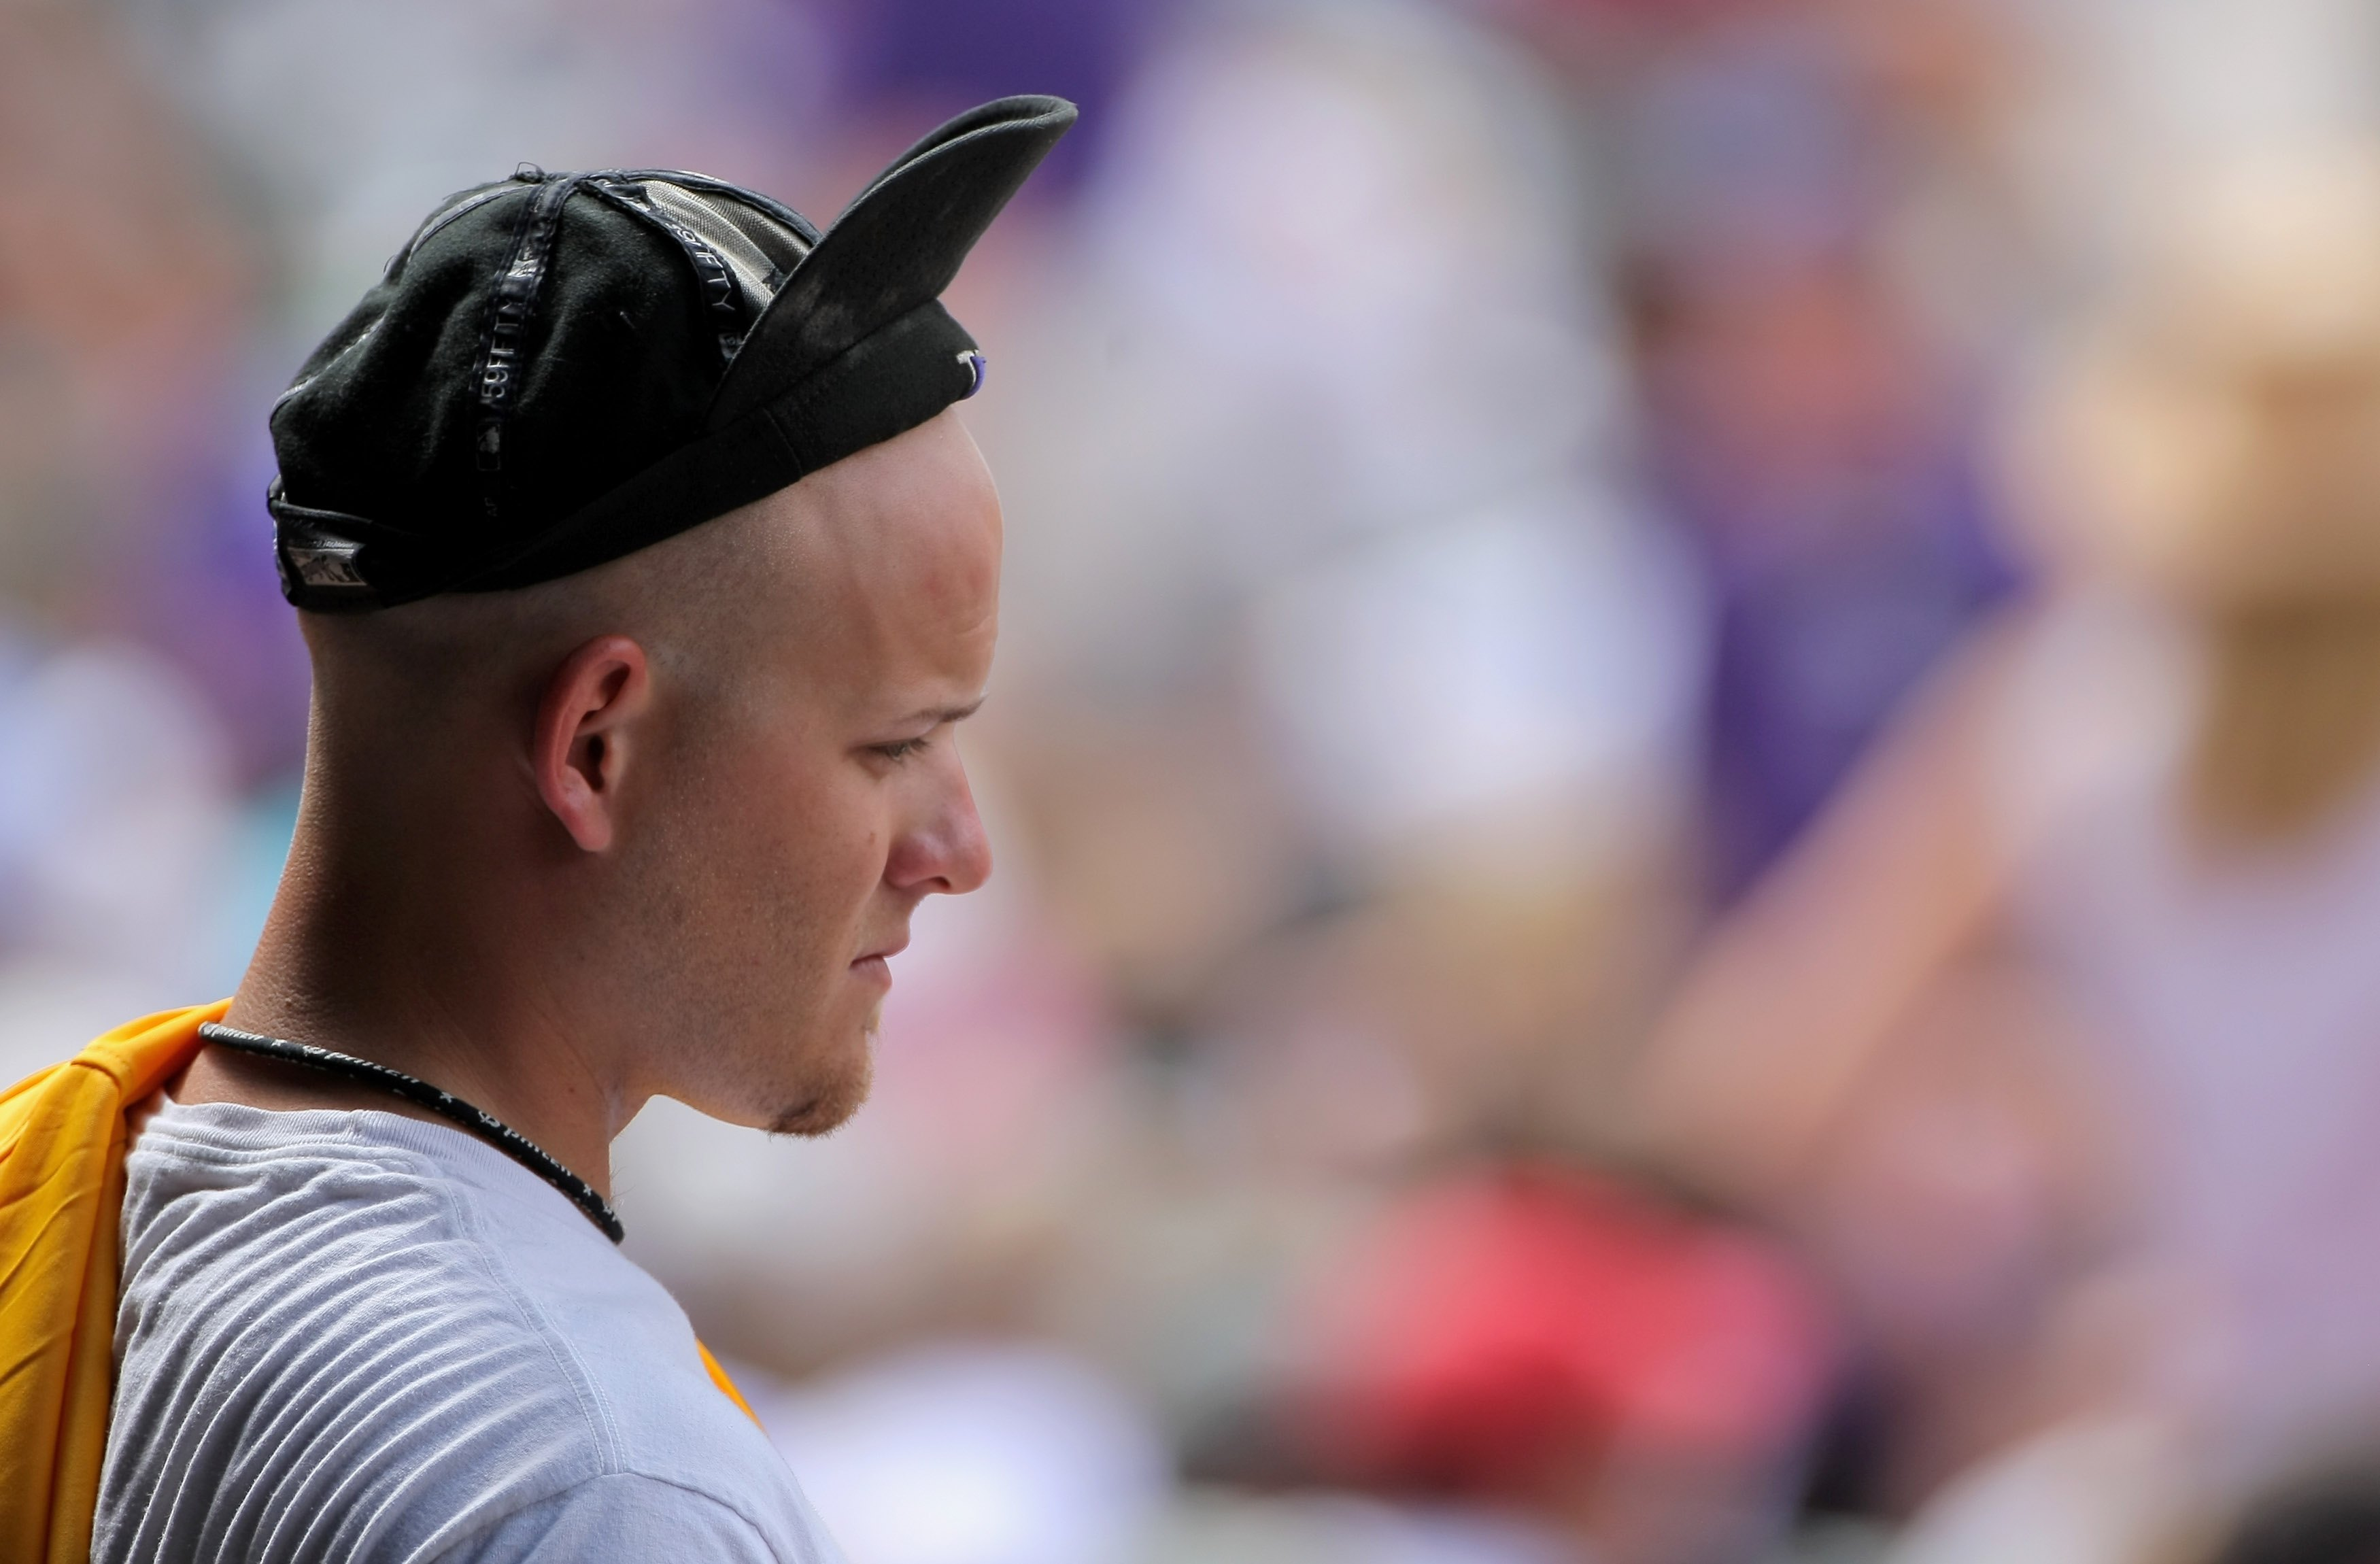 DENVER - JULY 12:  A fan of the Colorado Rockies sports his rally cap as the Rockies came from behind against the Atlanta Braves during MLB action at Coors Field on July 12, 2009 in Denver, Colorado. The Rockies defeated the Braves 8-7.  (Photo by Doug Pe